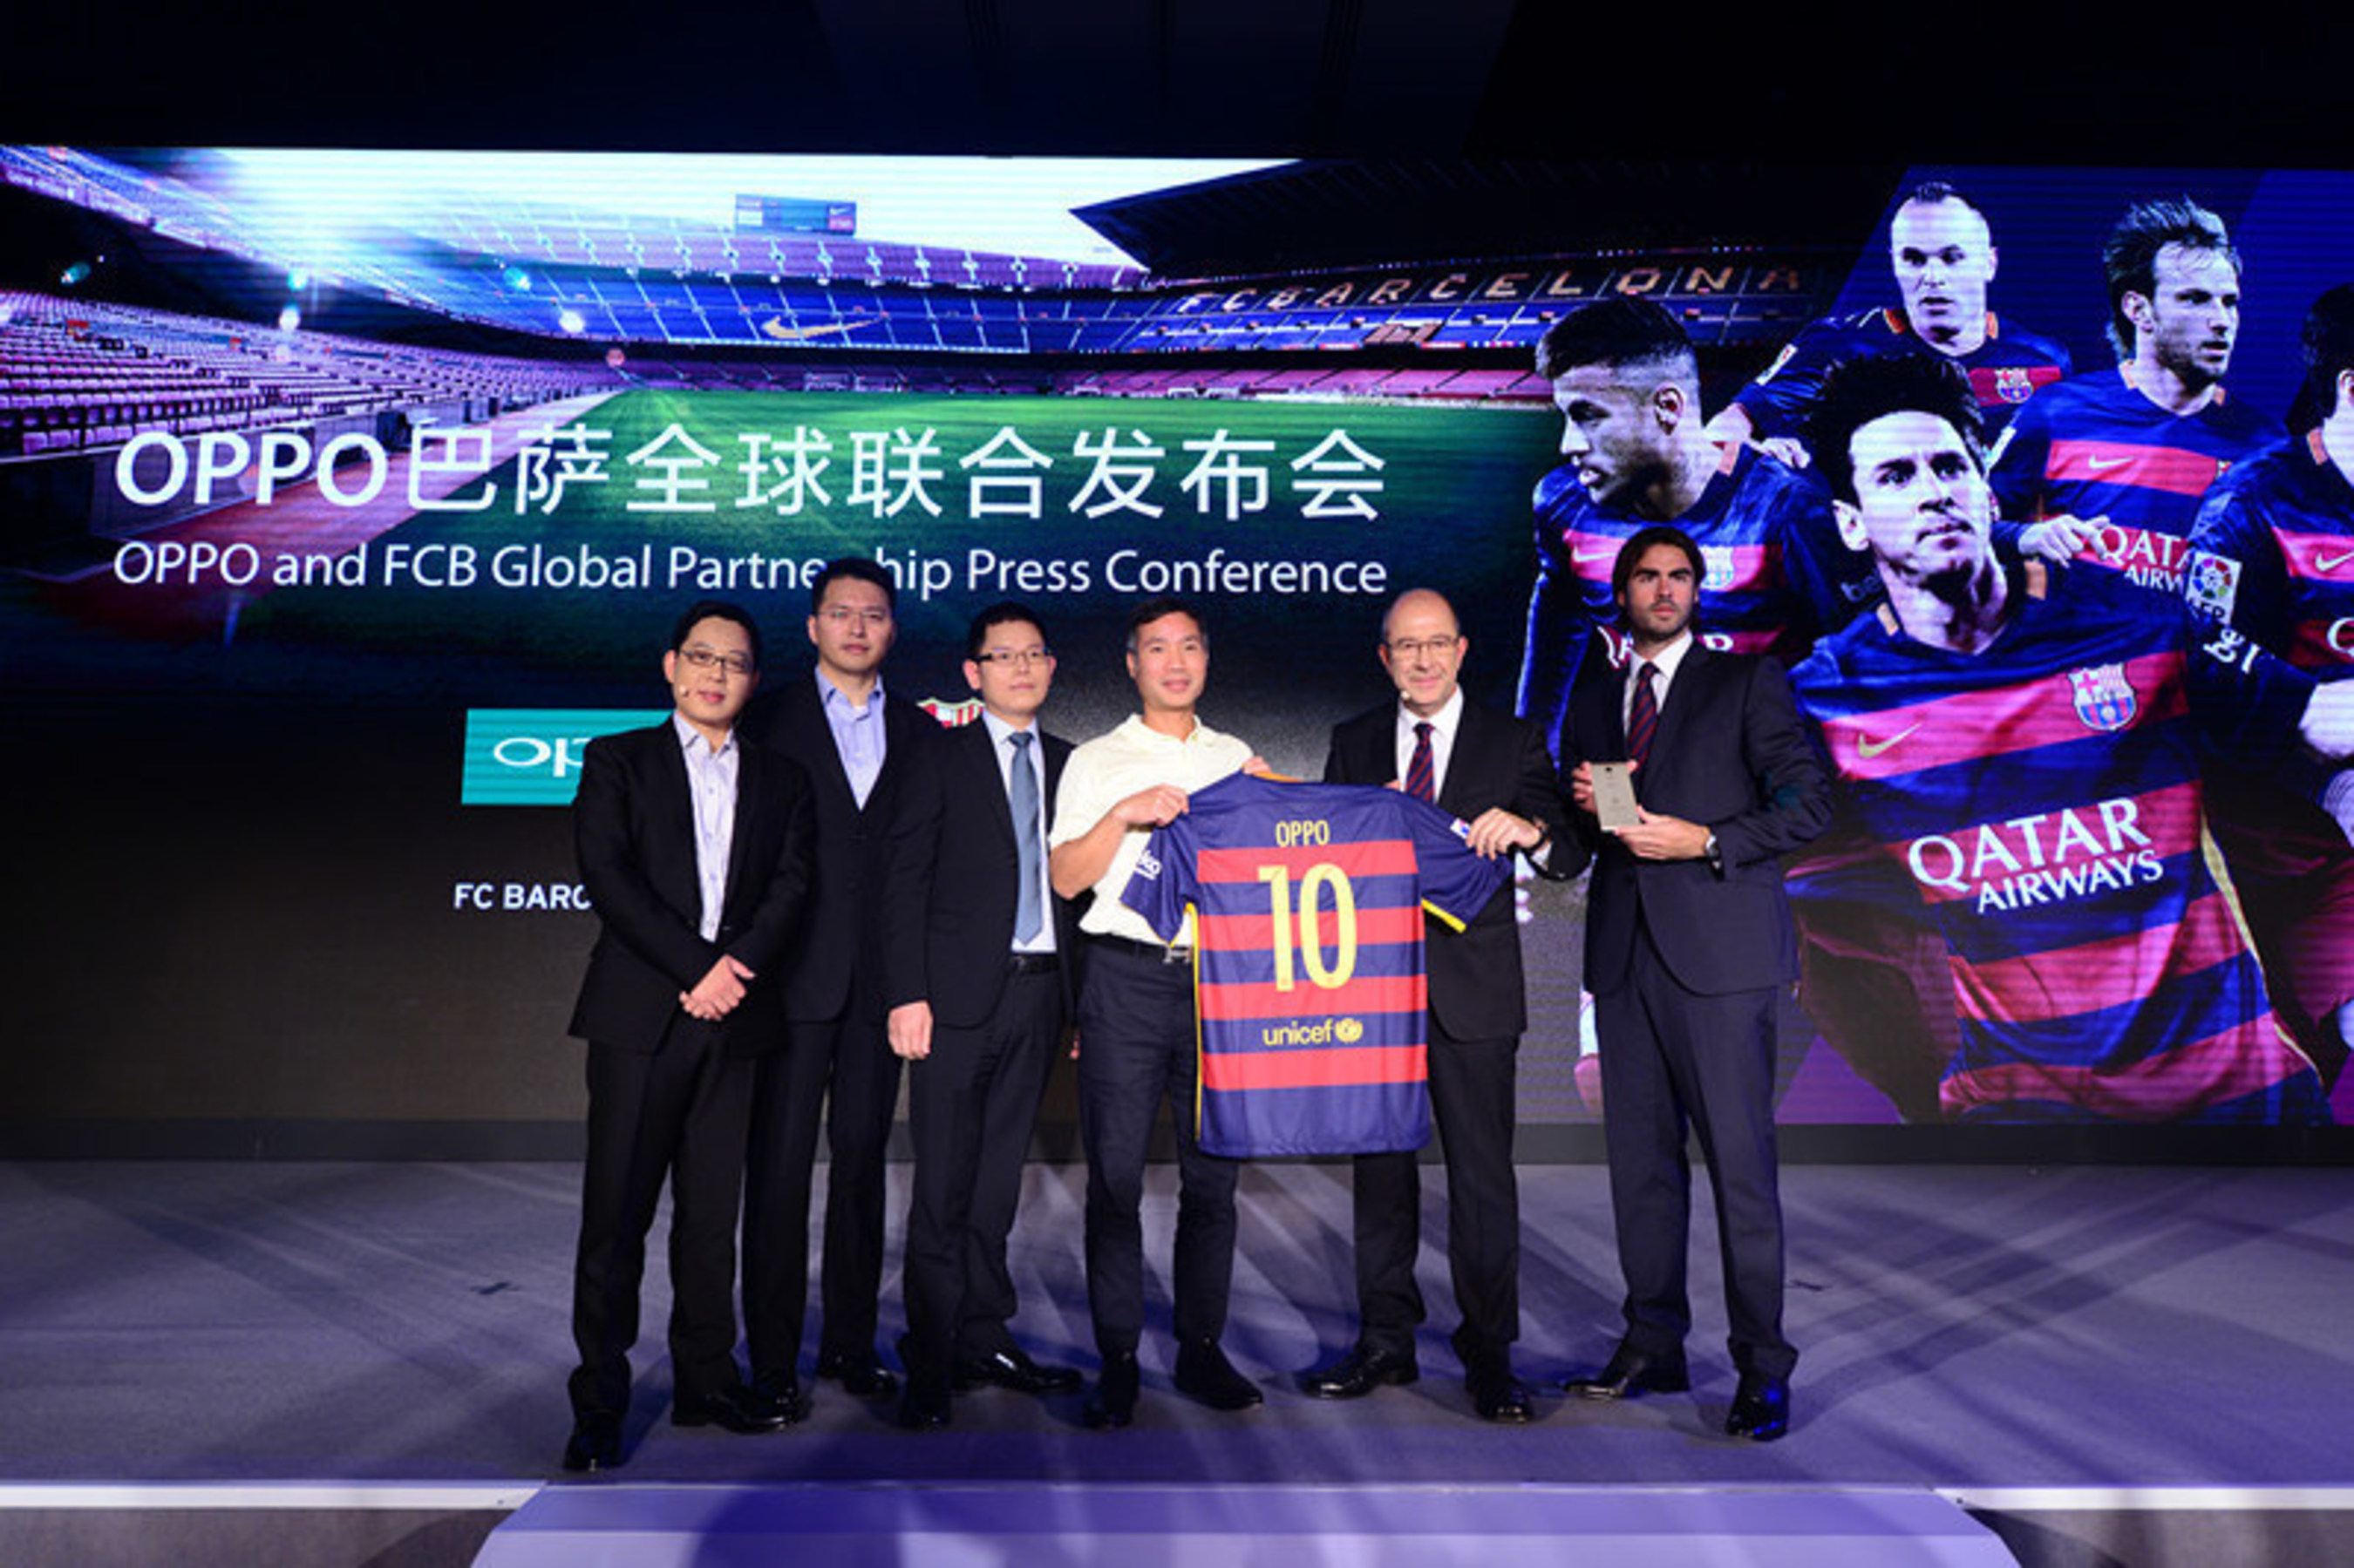 The FC Barcelona Vice Chairman welcomes OPPO into the family with a special jersey